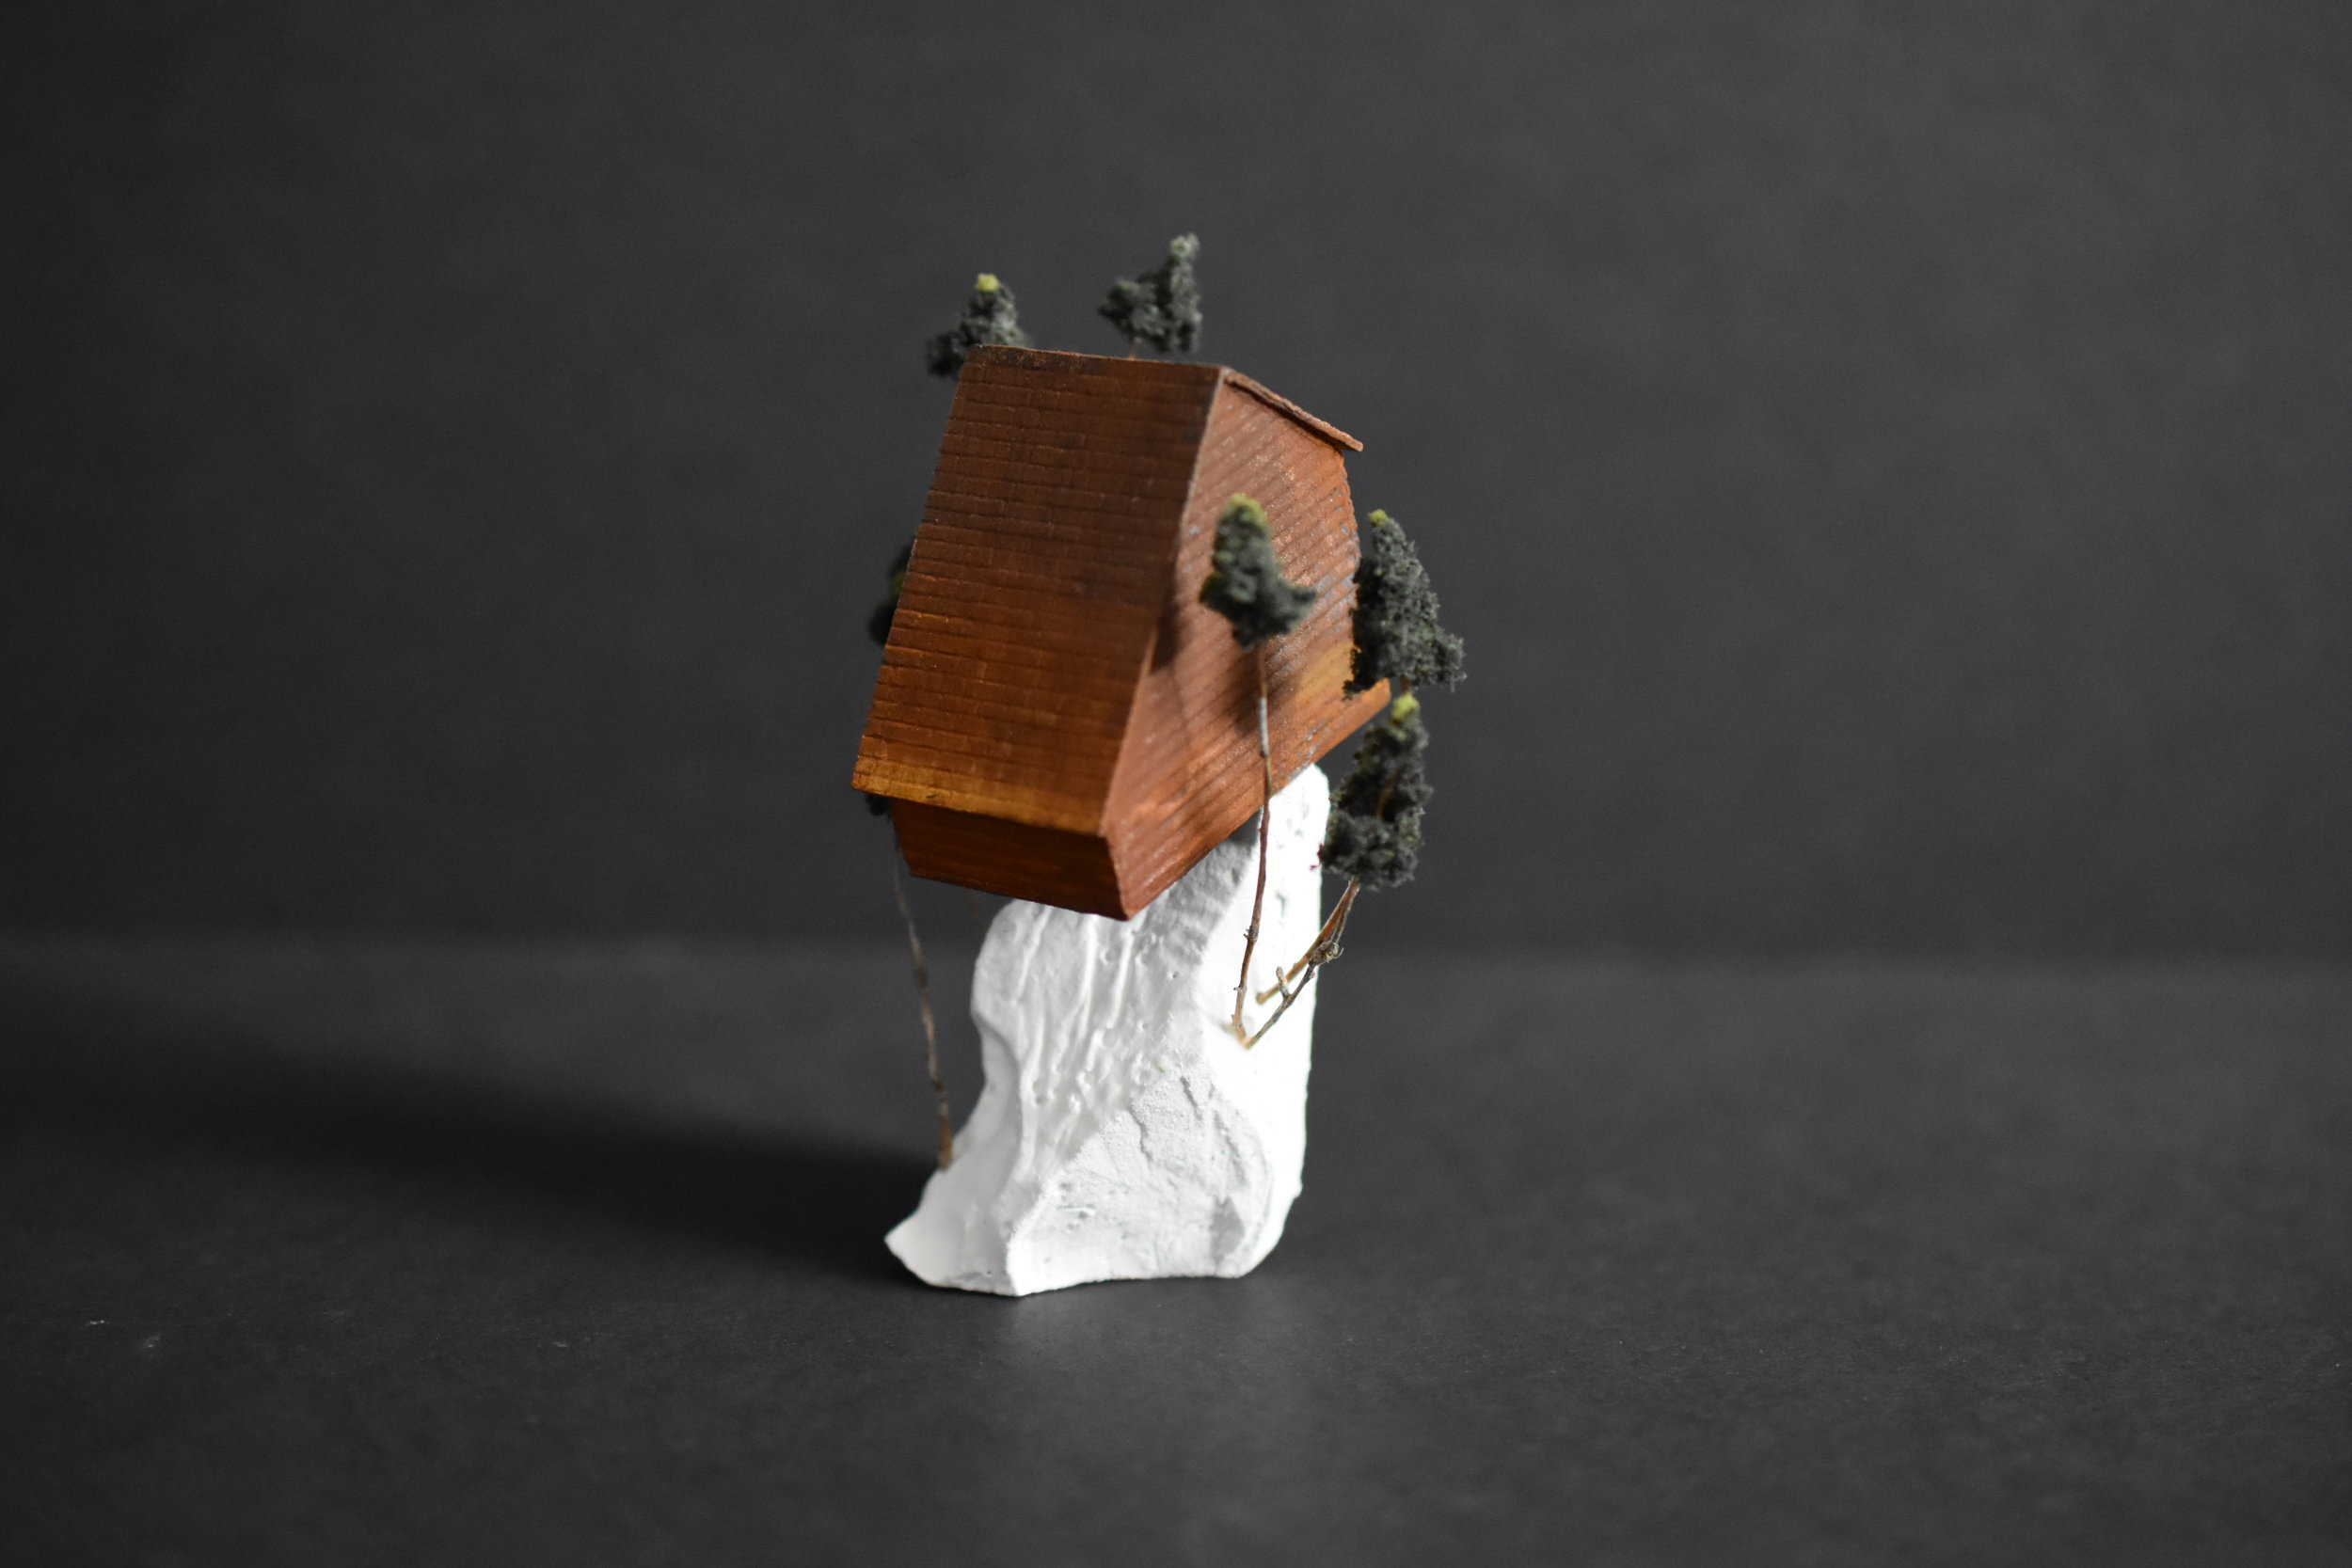 Tatiana Flis,  Between pines, a pause , Wood, plastic, and mixed-media, 3.5 x 2 x 2 inches